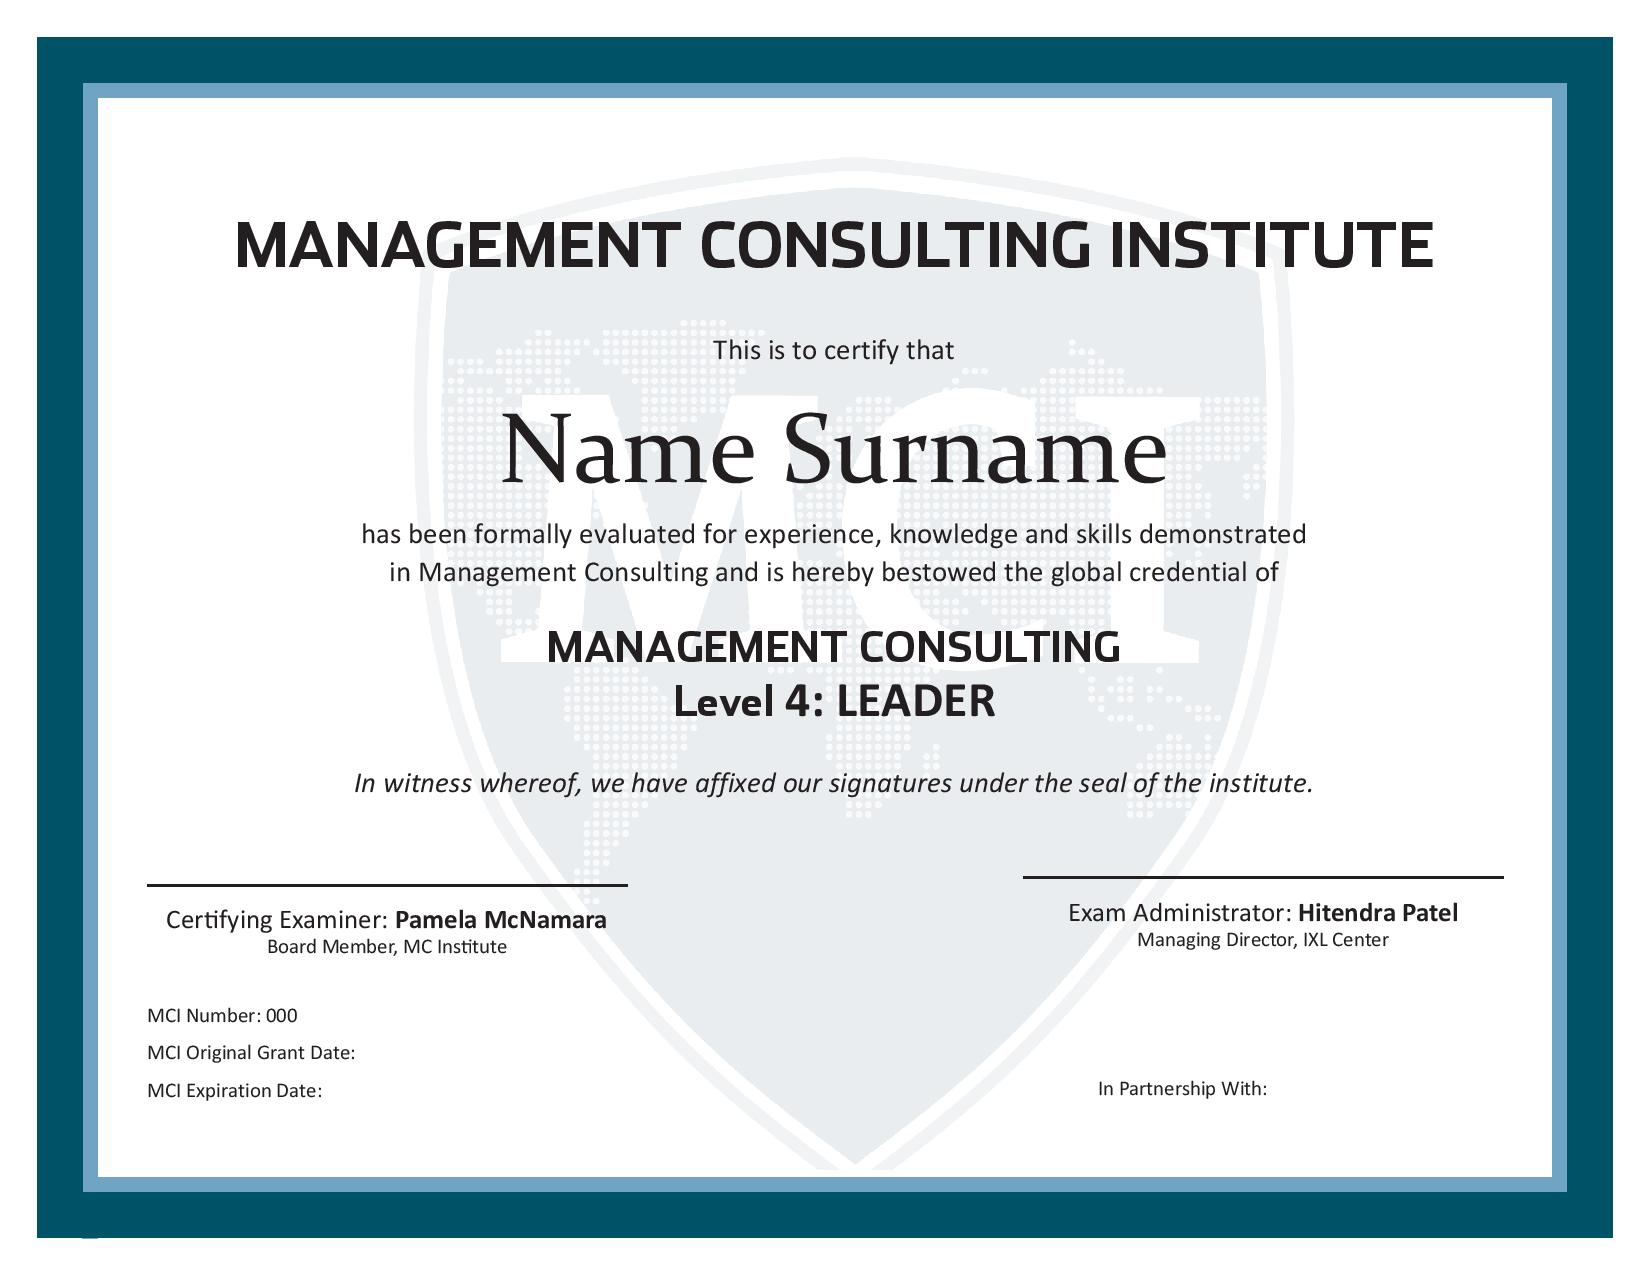 management consulting certificate - level 4